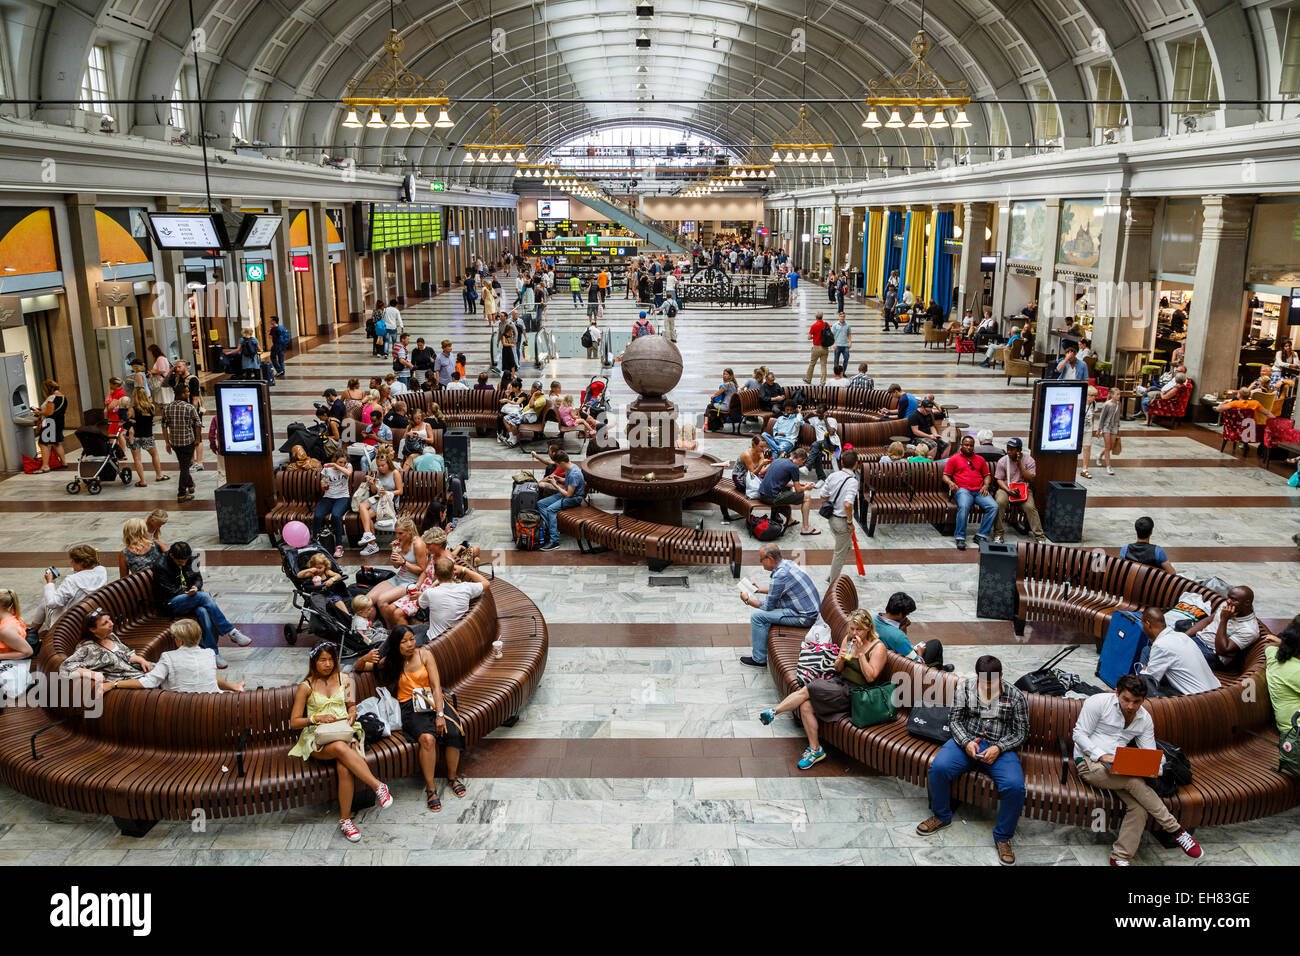 Stockholm Central Station, Stockholm, Sweden, Scandinavia, Europe - Stock Image